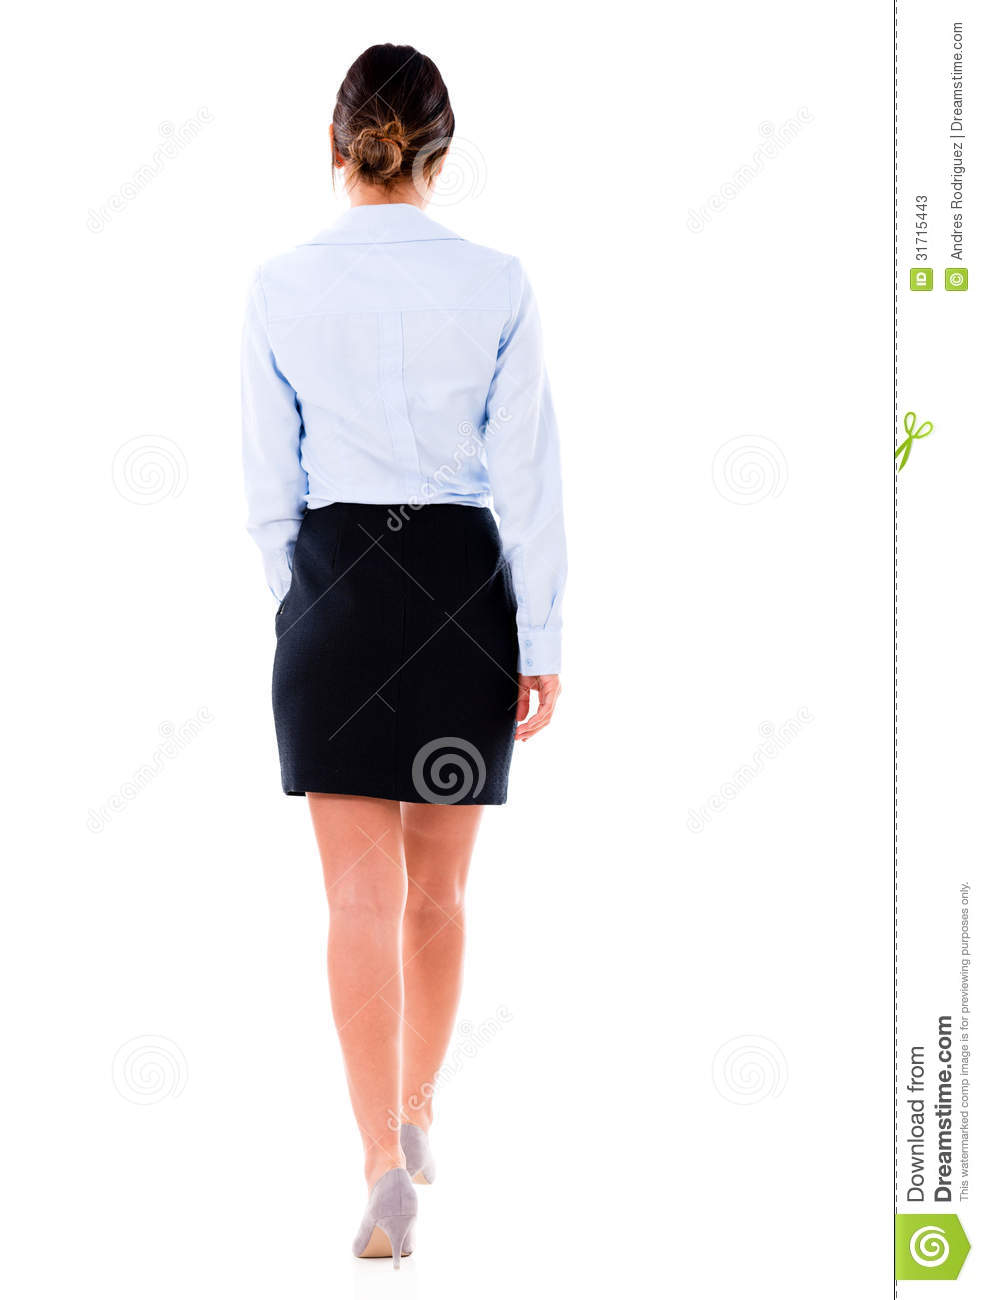 business-woman-walking-away-isolated-over-white-background-31715443.jpg